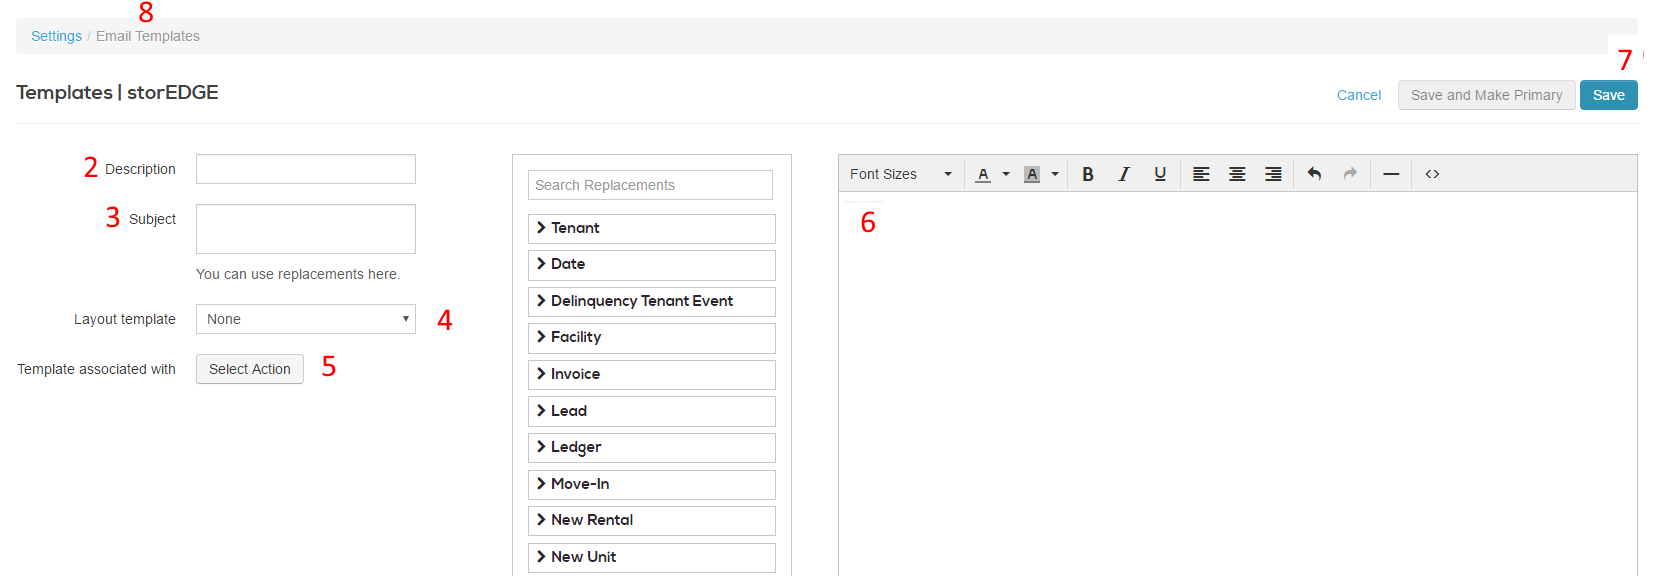 Creating And Editing Email Templates Storedge